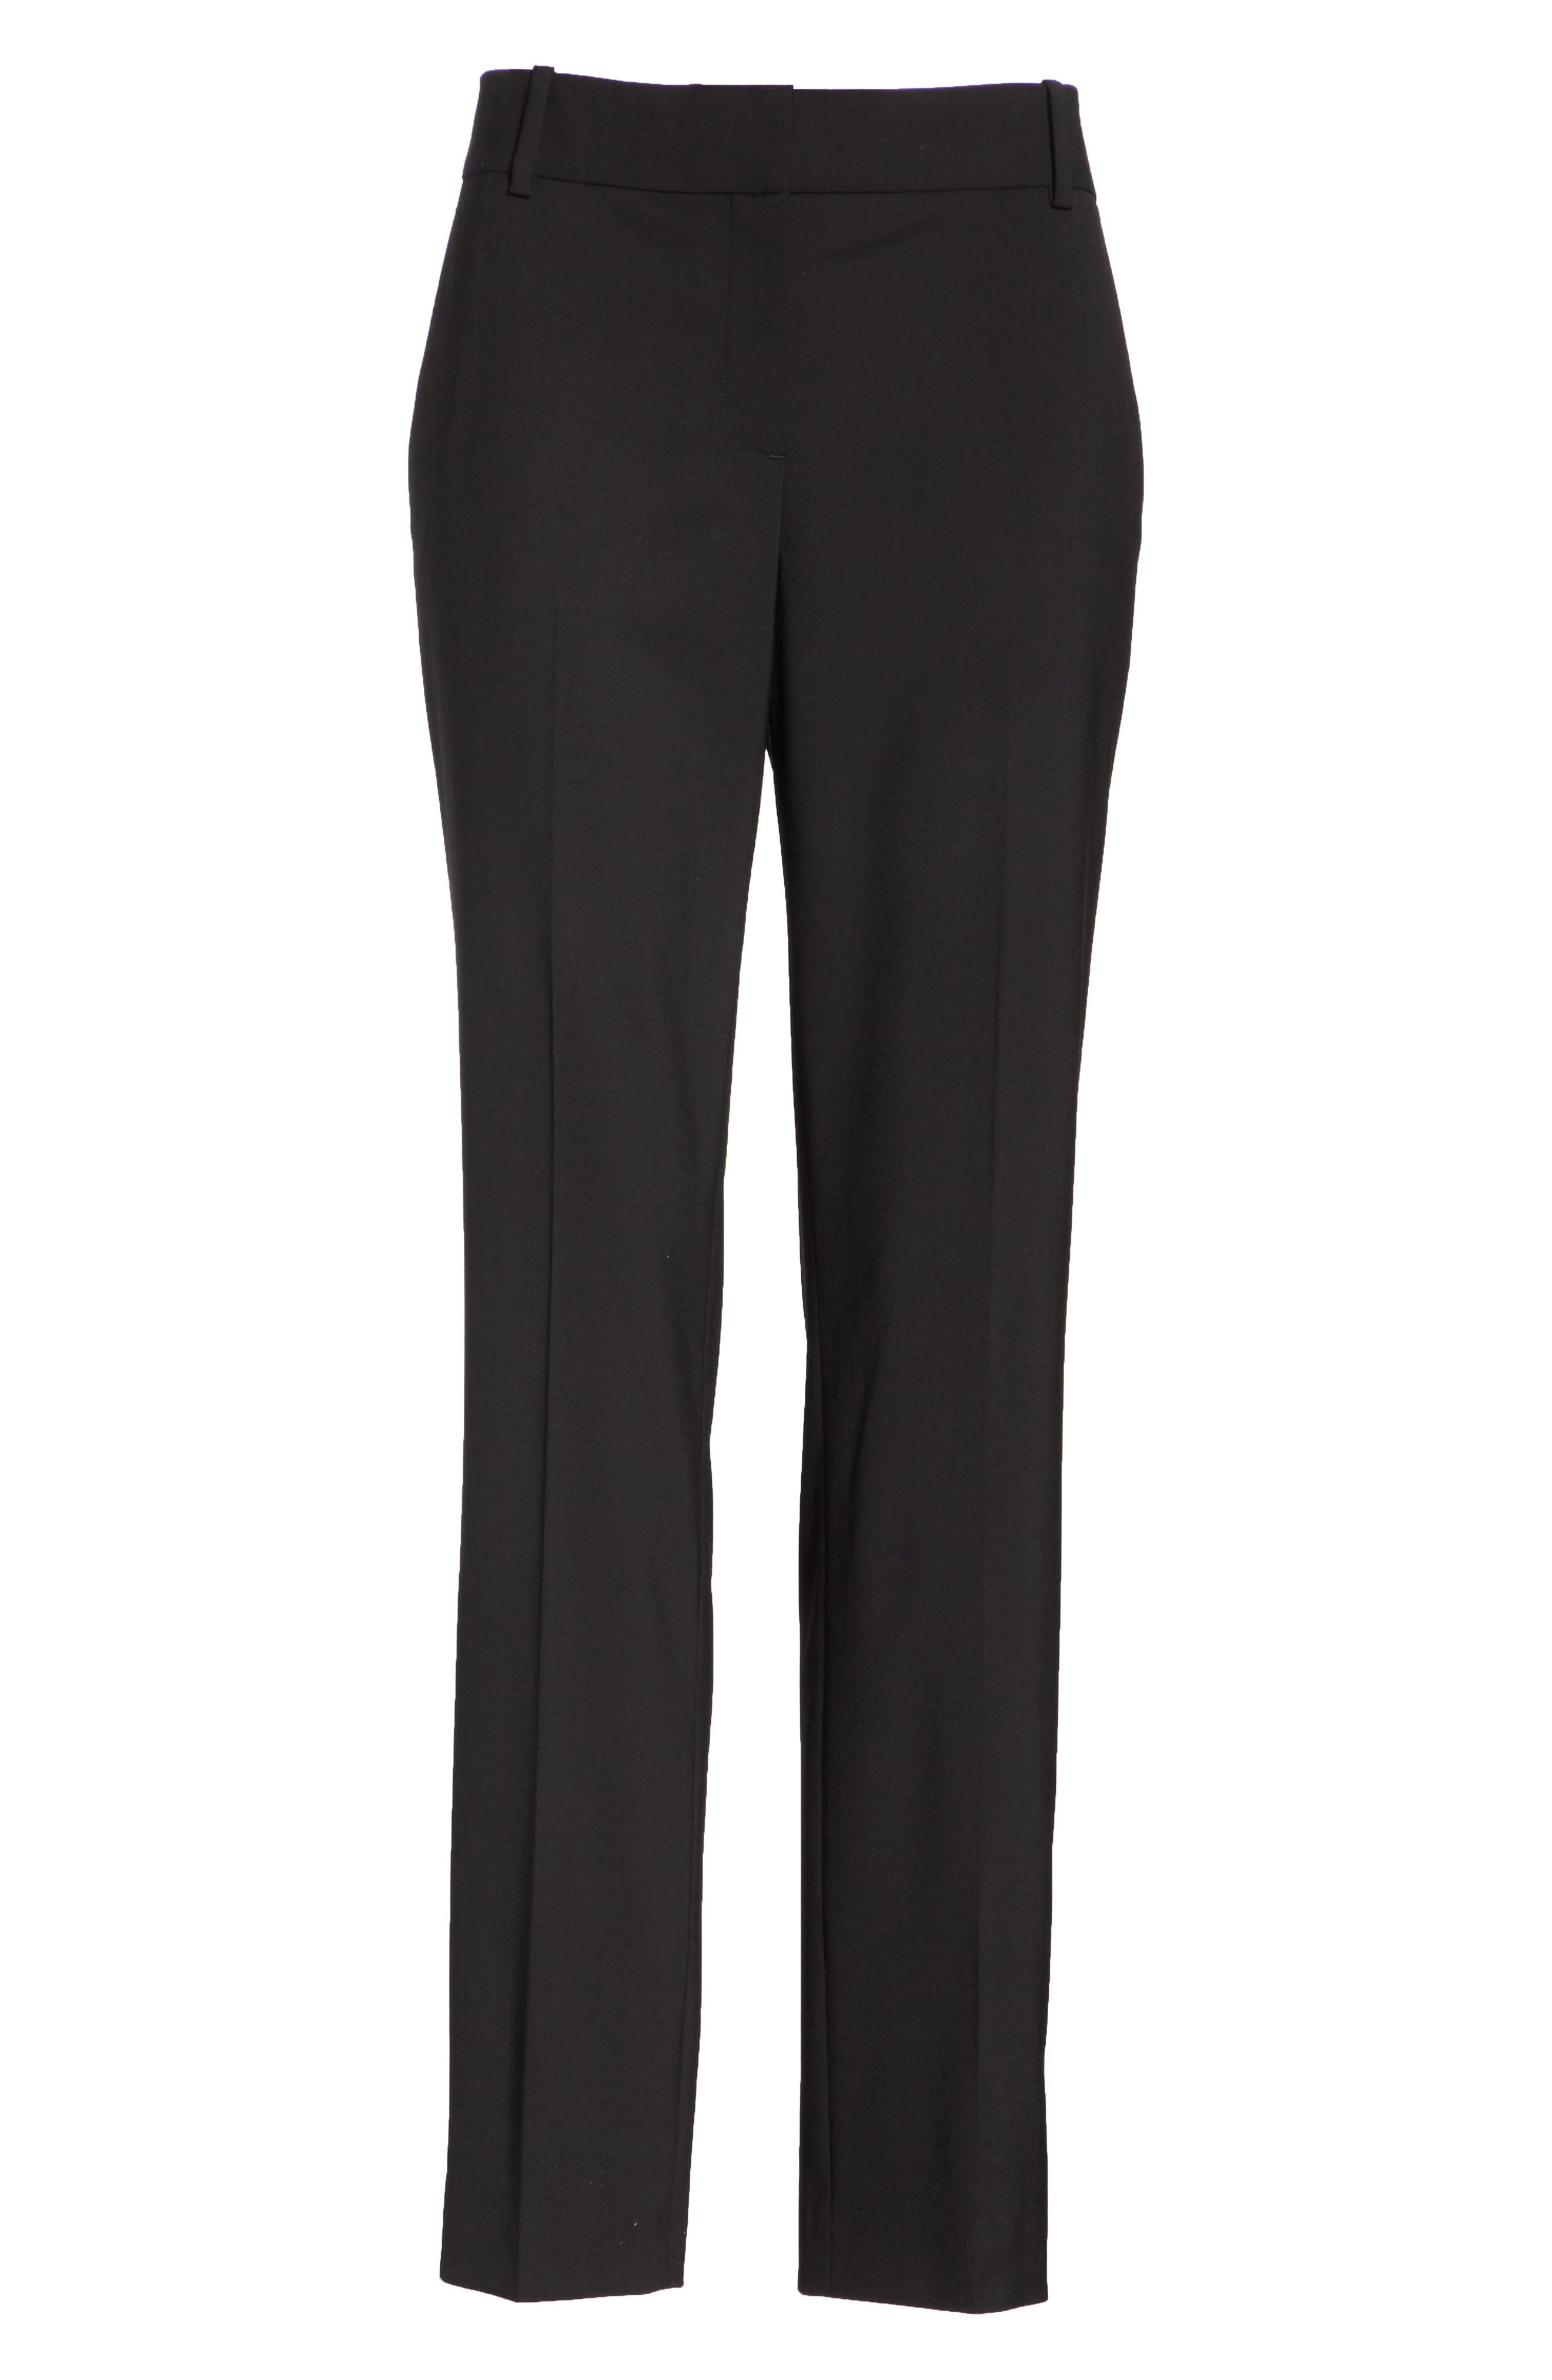 Straight Leg Stretch Wool Trousers,                             Alternate thumbnail 7, color,                             BLACK